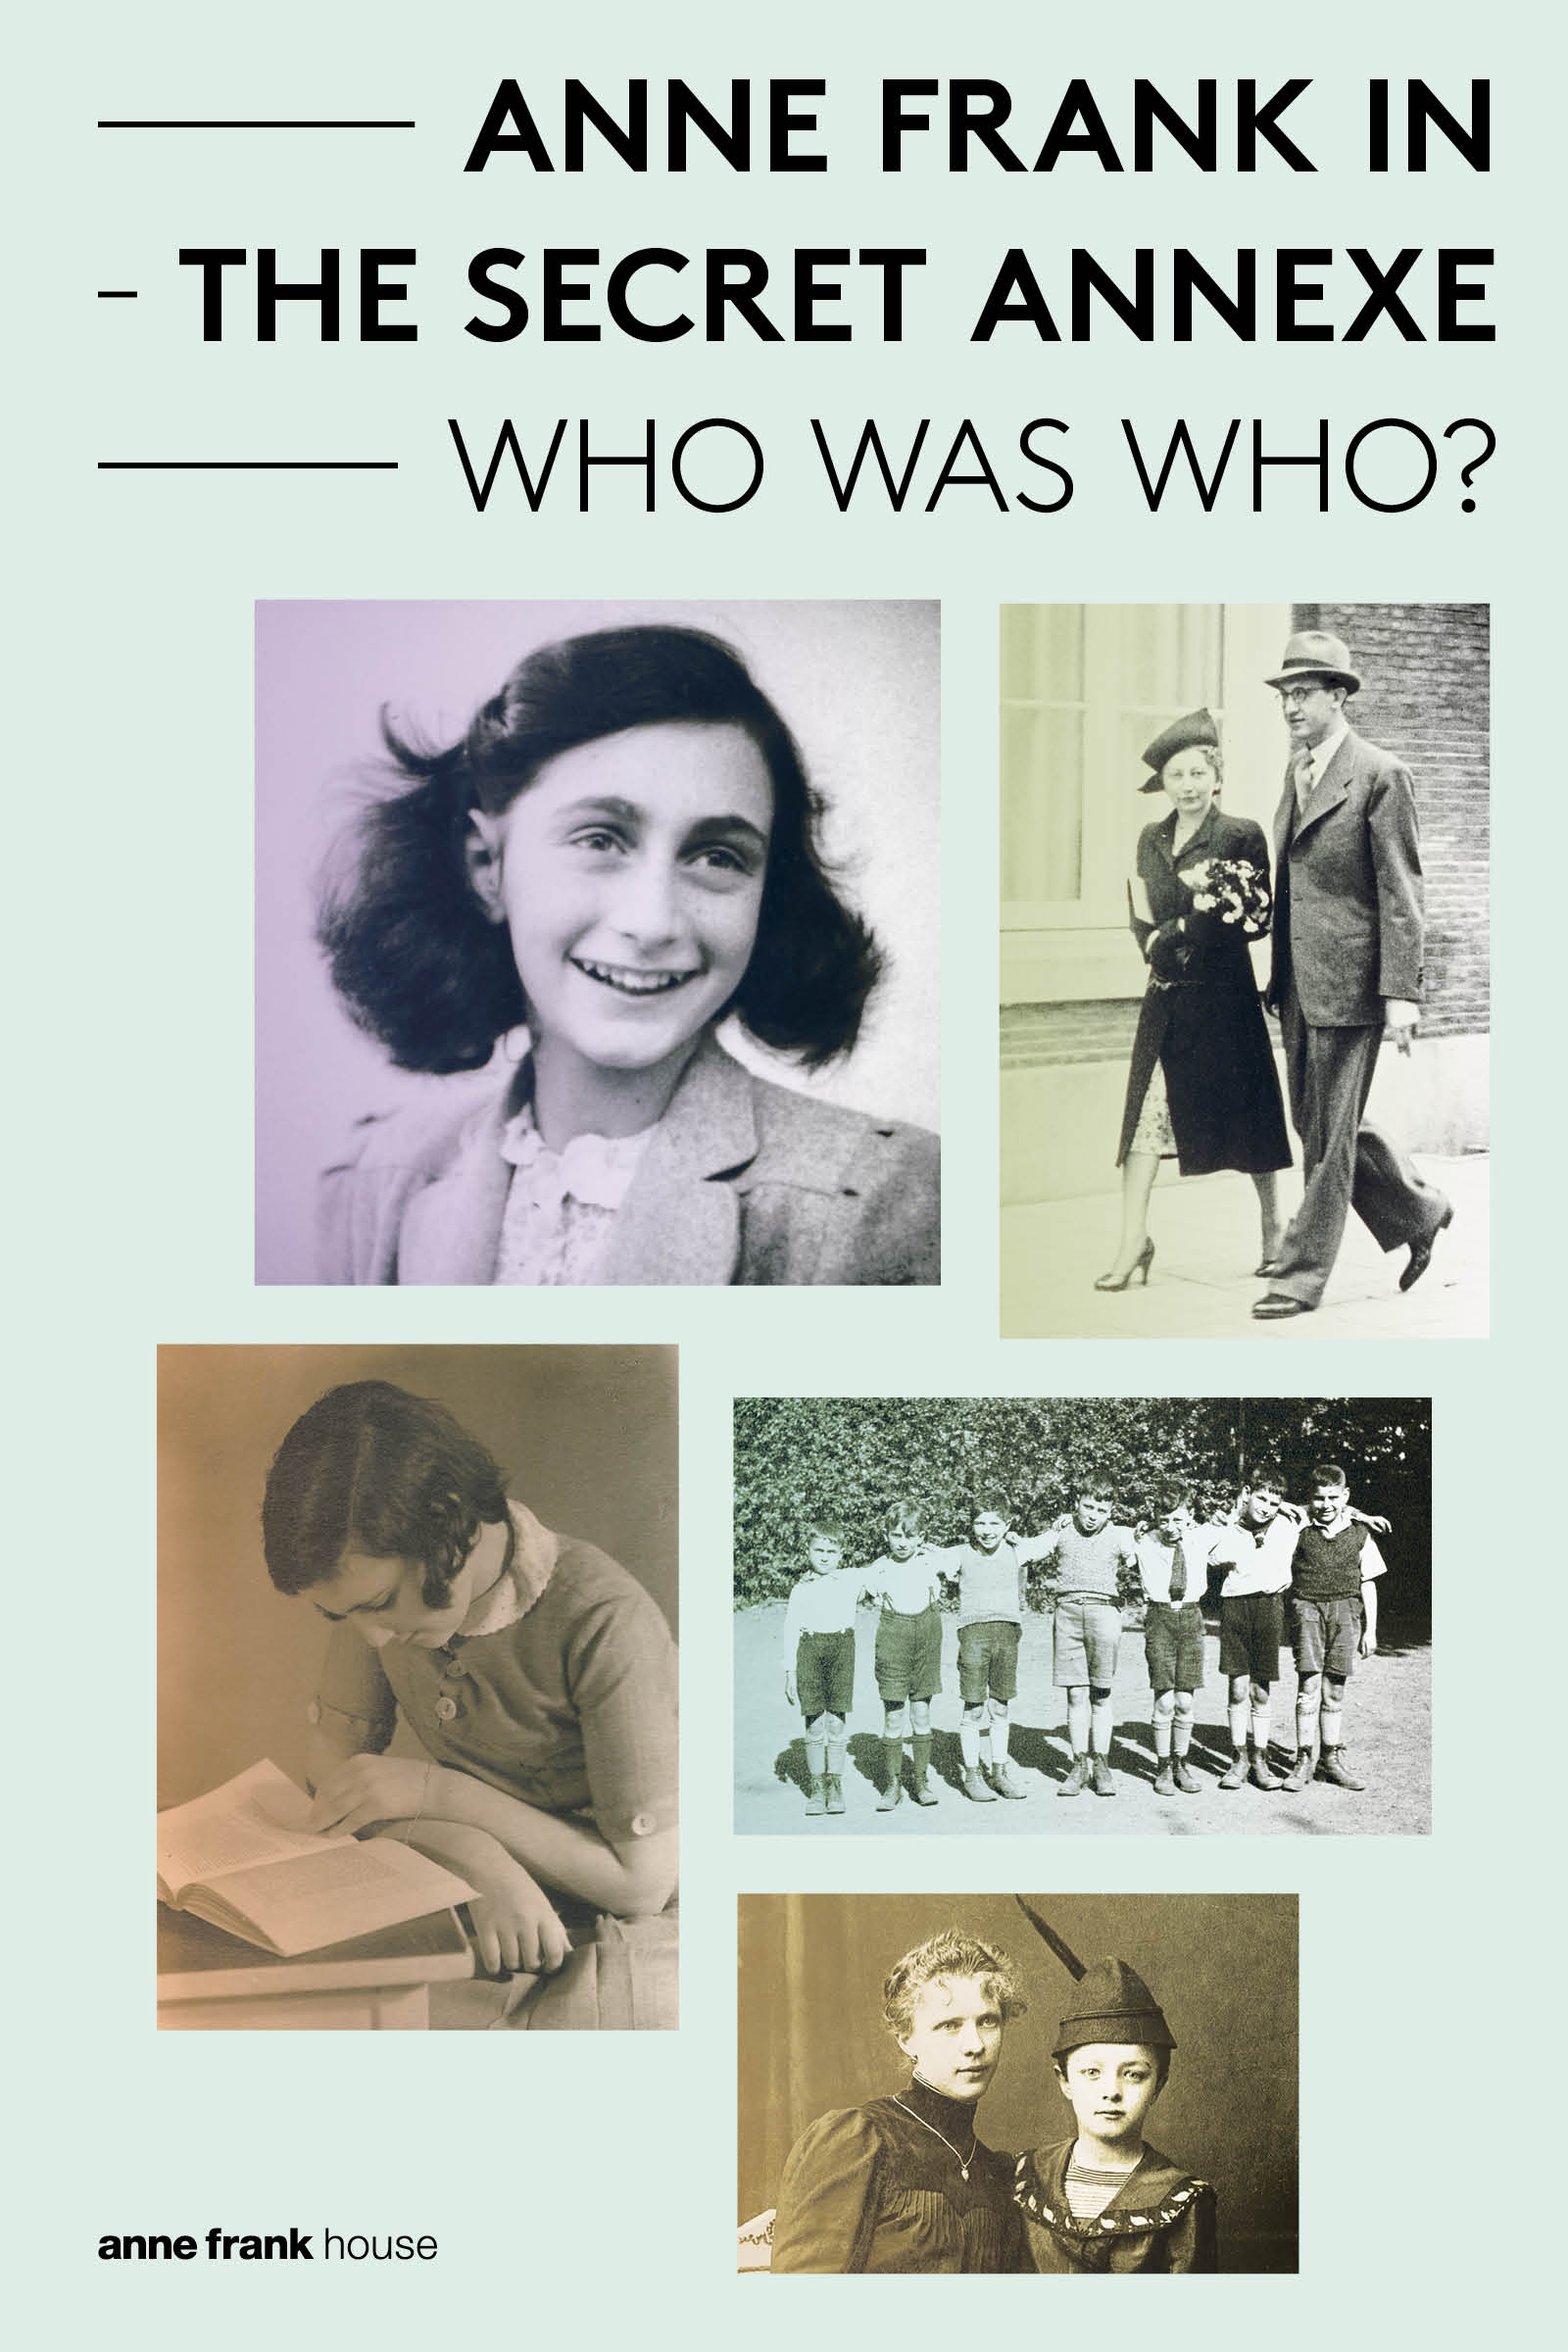 Anne Frank in the Secret Annexe - Who was Who?